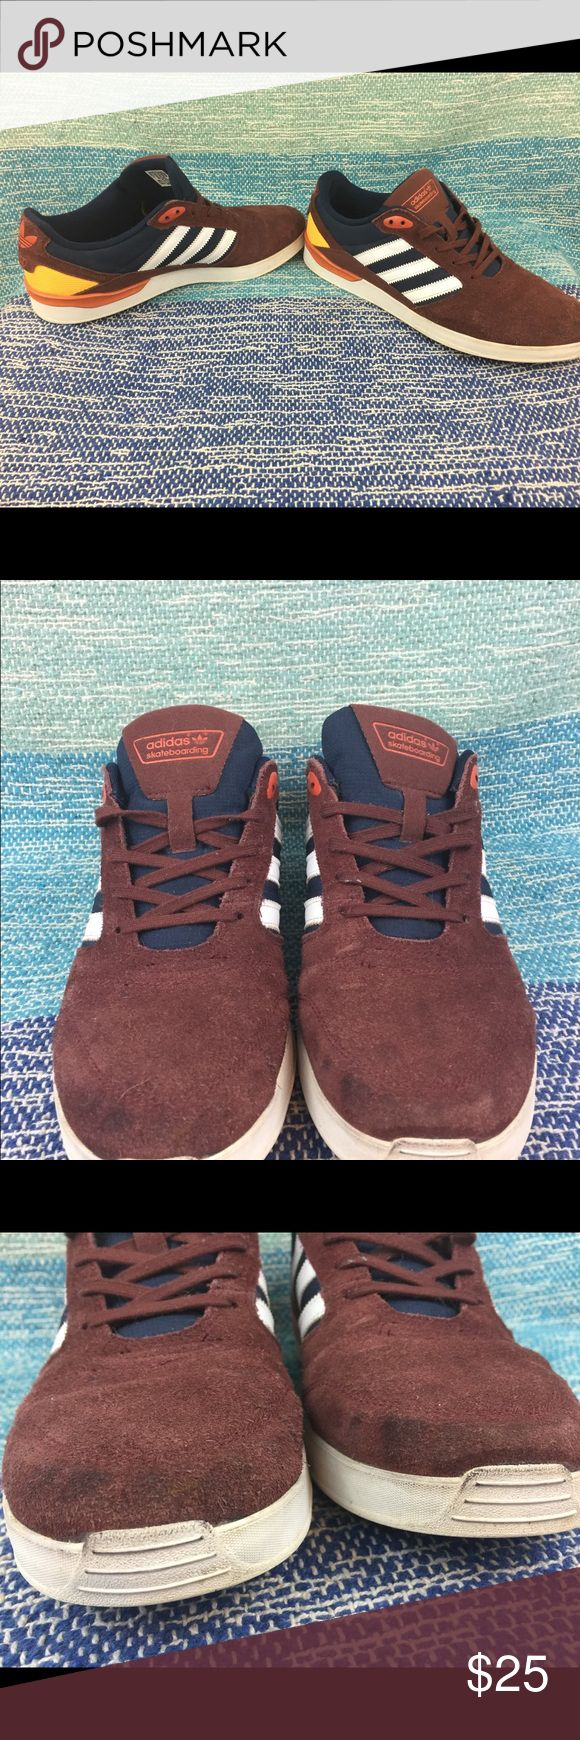 Adidas skateboarding ZX VLC shoes red orange suede Men's size 11 Suede Adidas skateboarding ZX VLC shoes. Used condition,Tread and insoles in awesome shape. Everything about the shoes are in good shape but the Suede needs cleaned up with some Suede cleaner. adidas Shoes Sneakers